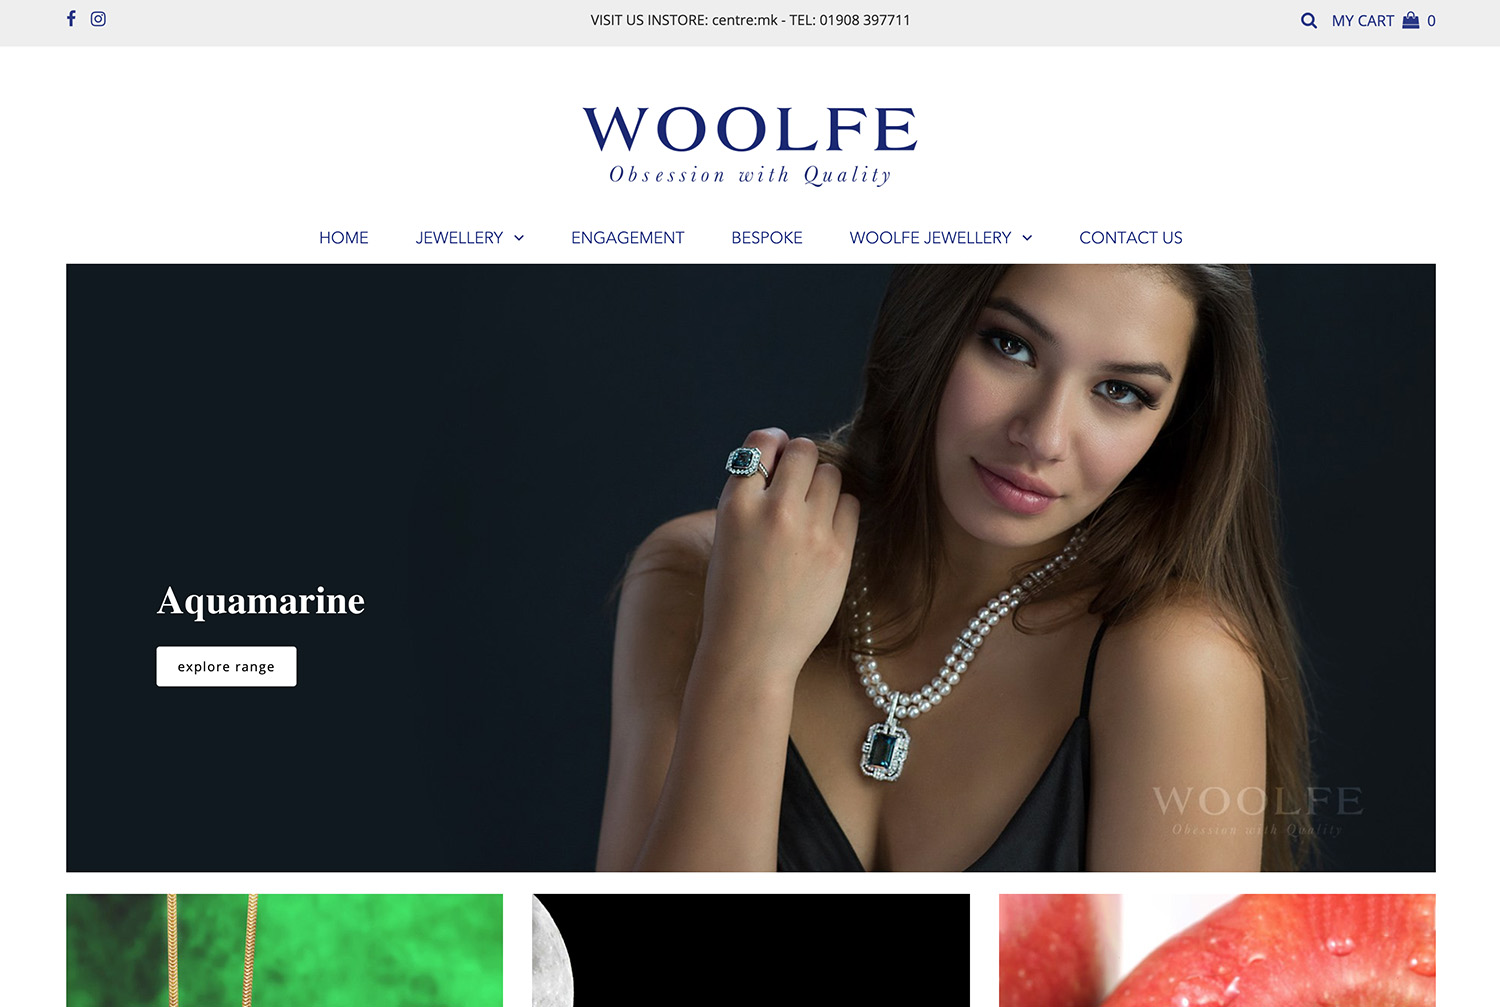 Woolfe Jewellery - Woolfe Jewellery is known as Buckinghamshire's prestigious Jewellery house. Based in the heart of Milton Keynes theyspecialise in contemporarycoloured stonejewellery and beautiful bespoke diamond engagement rings.